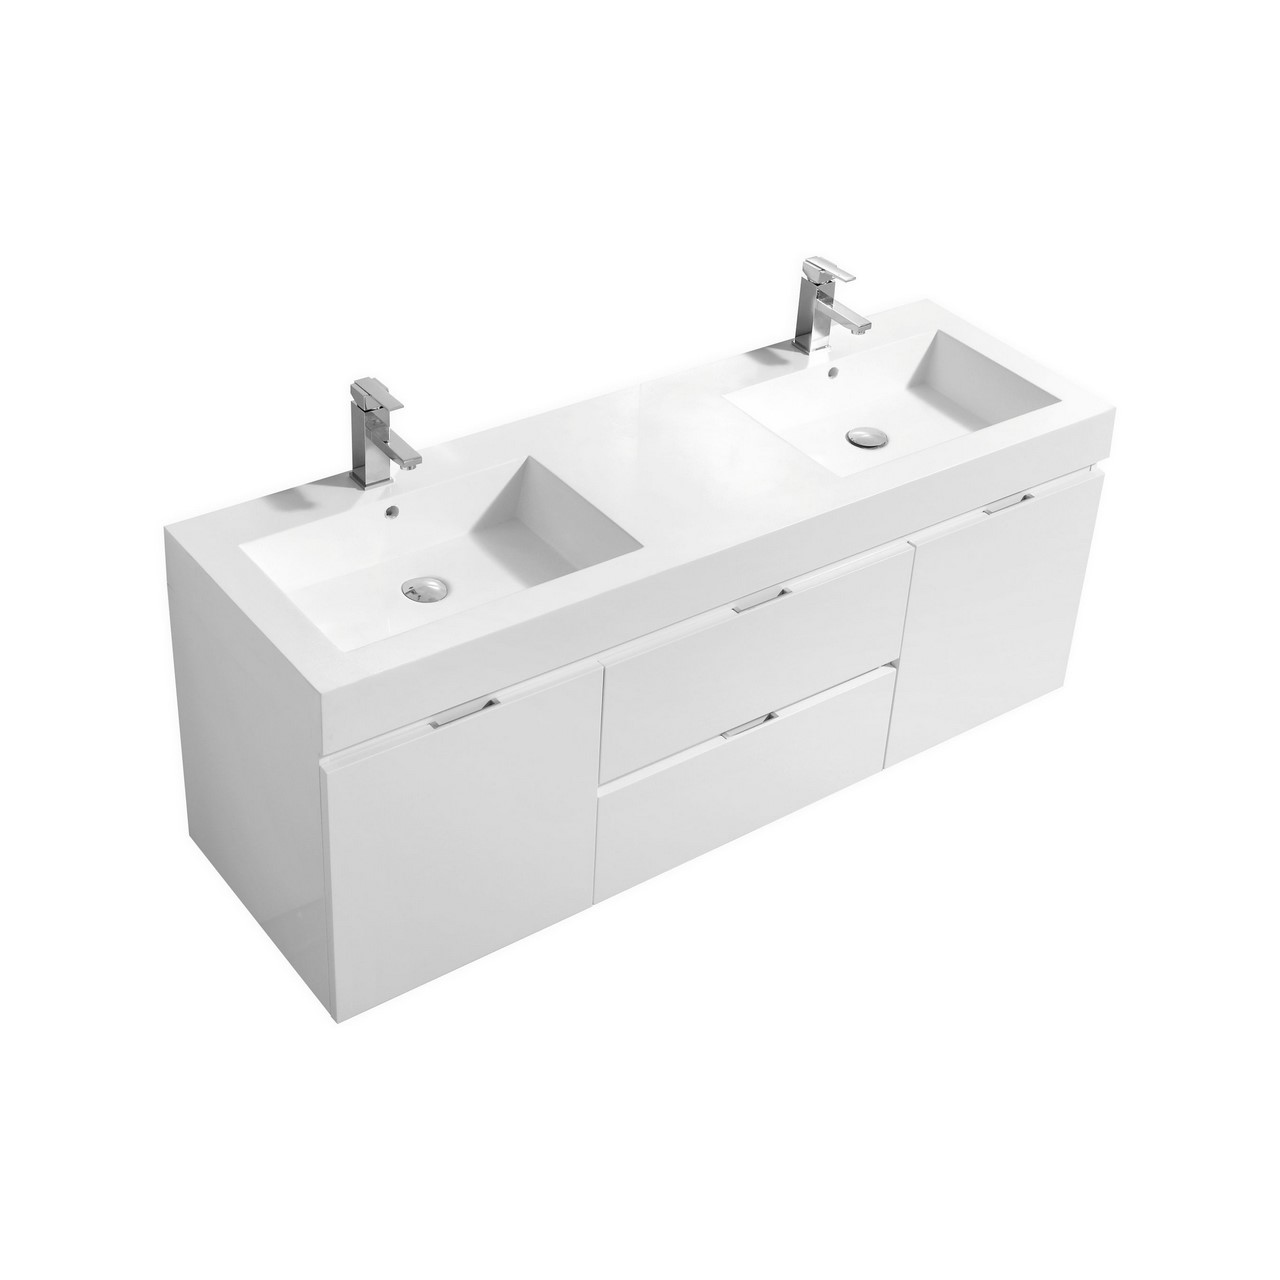 Bliss 60 high gloss white wall mount double sink vanity - Double sink bathroom vanity ...